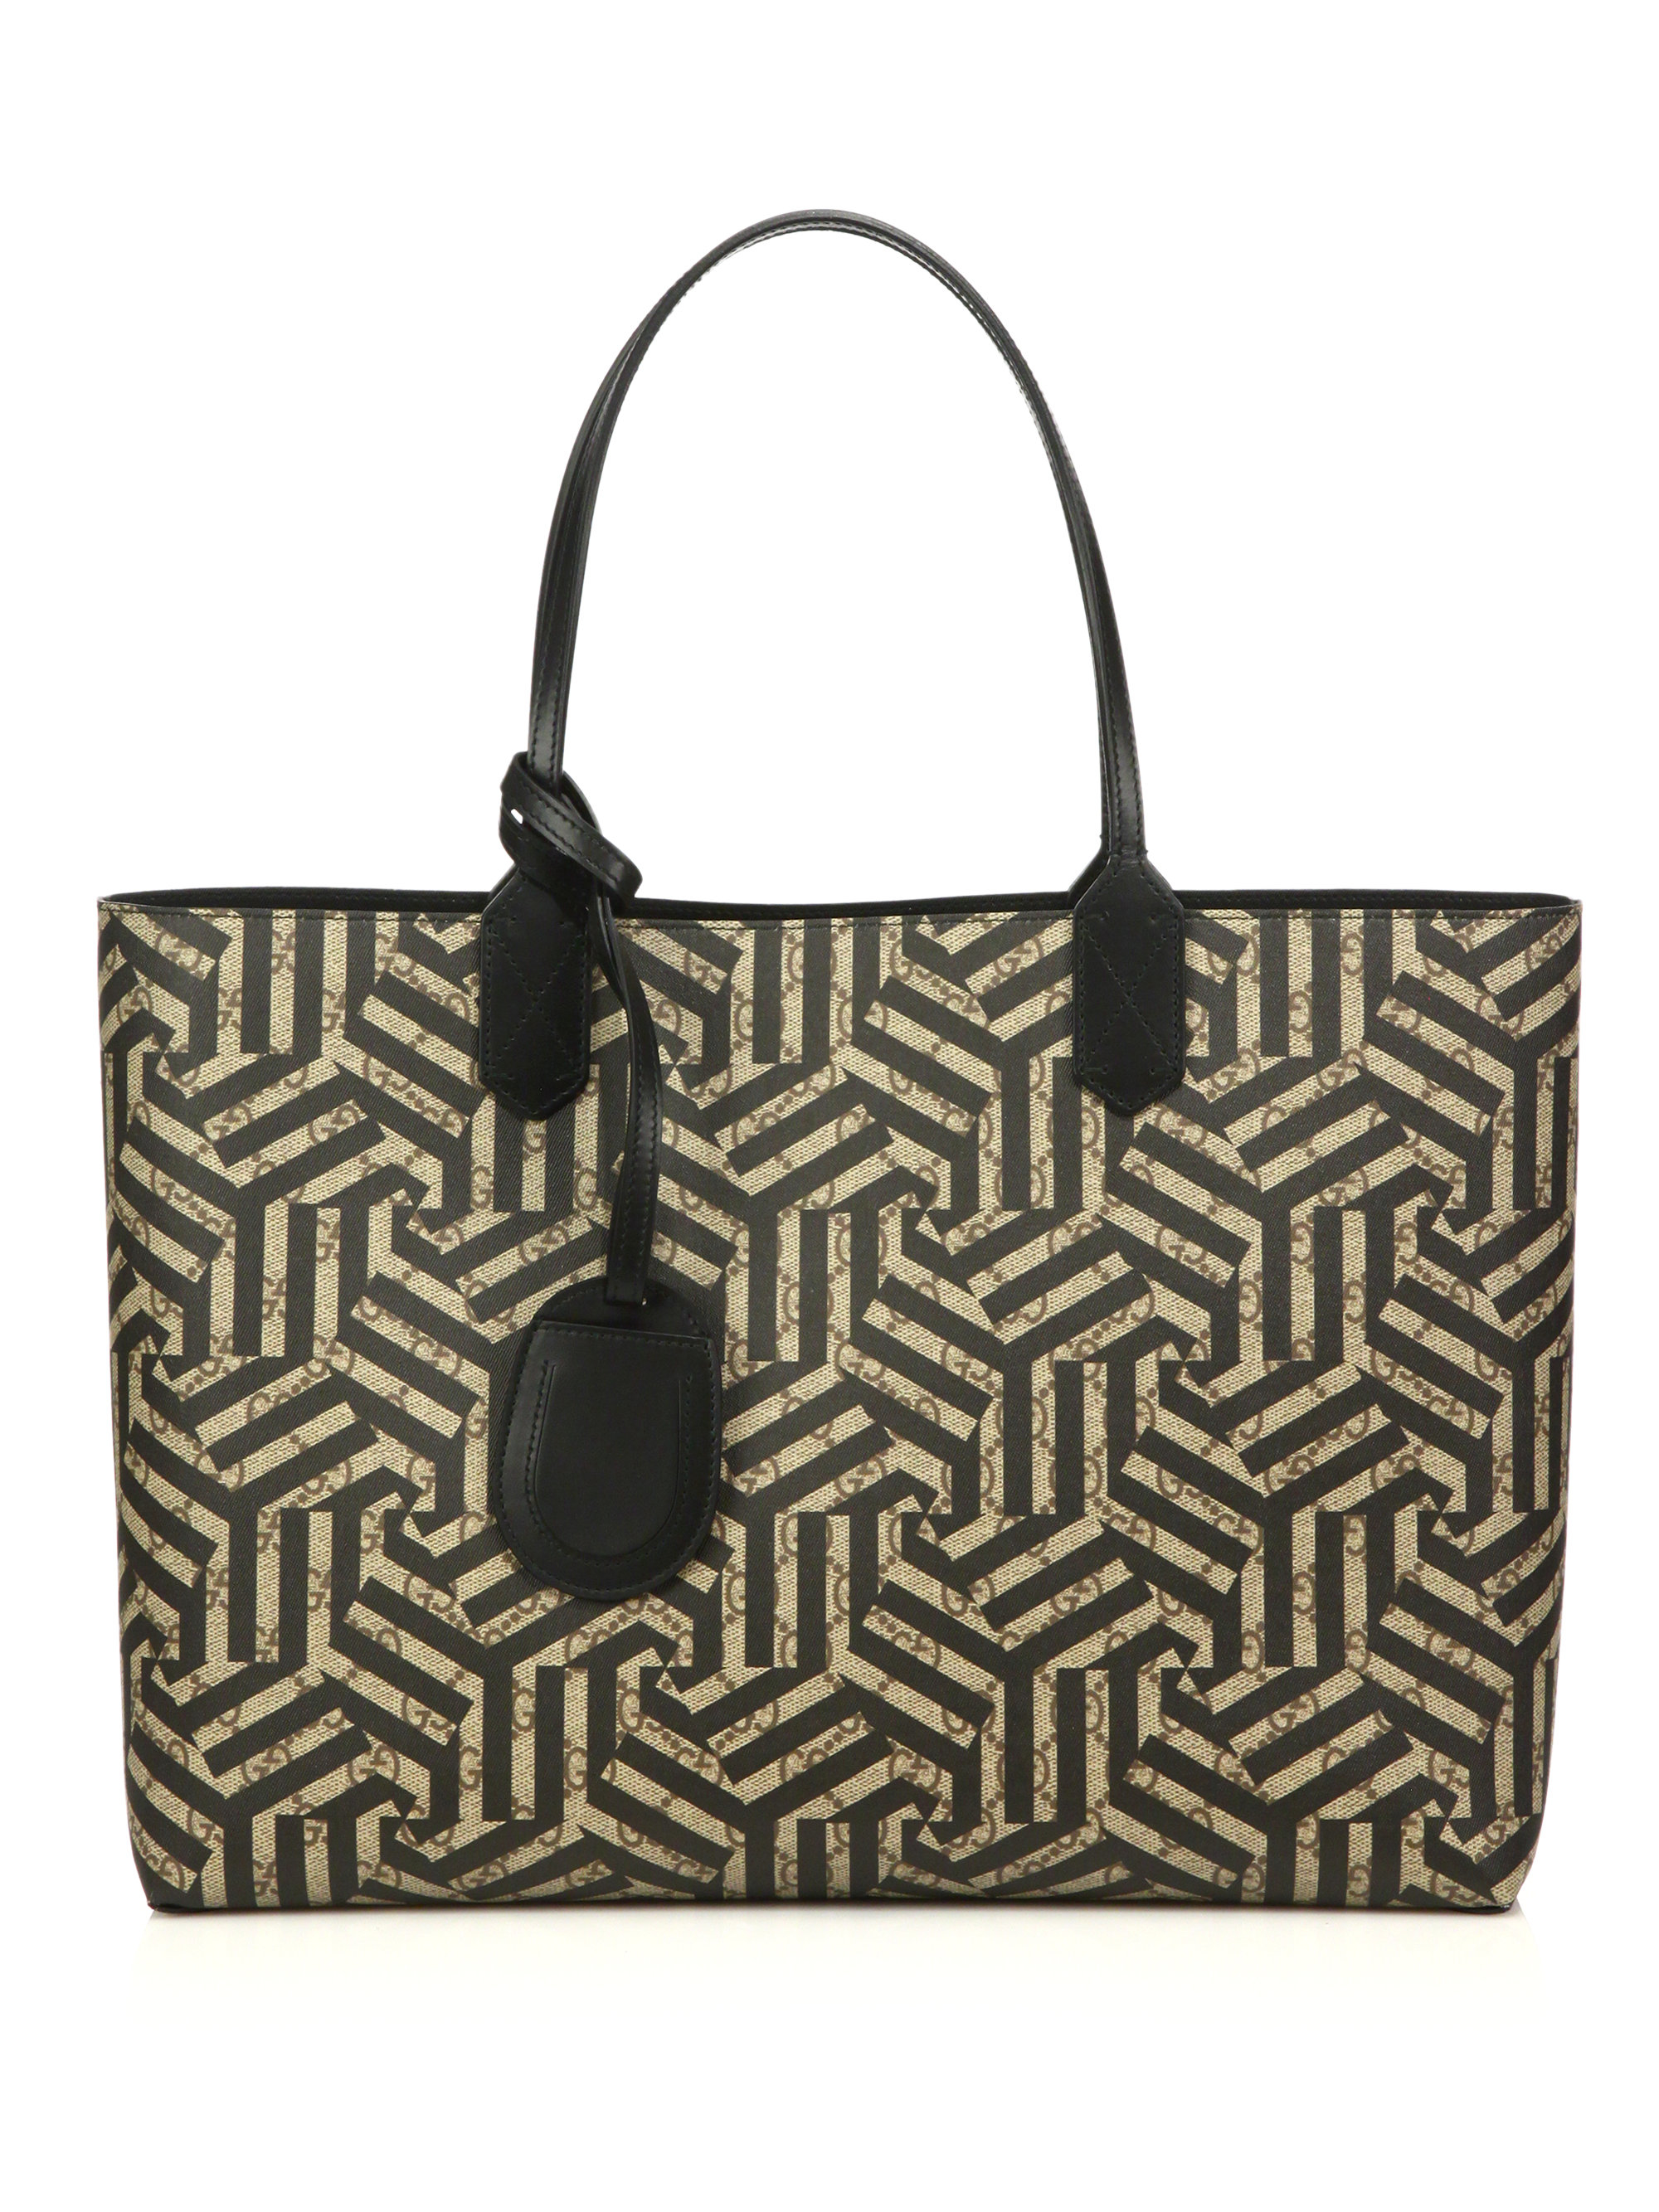 04a48b1322d483 Gallery. Previously sold at: Saks Fifth Avenue · Women's Reversible Bags